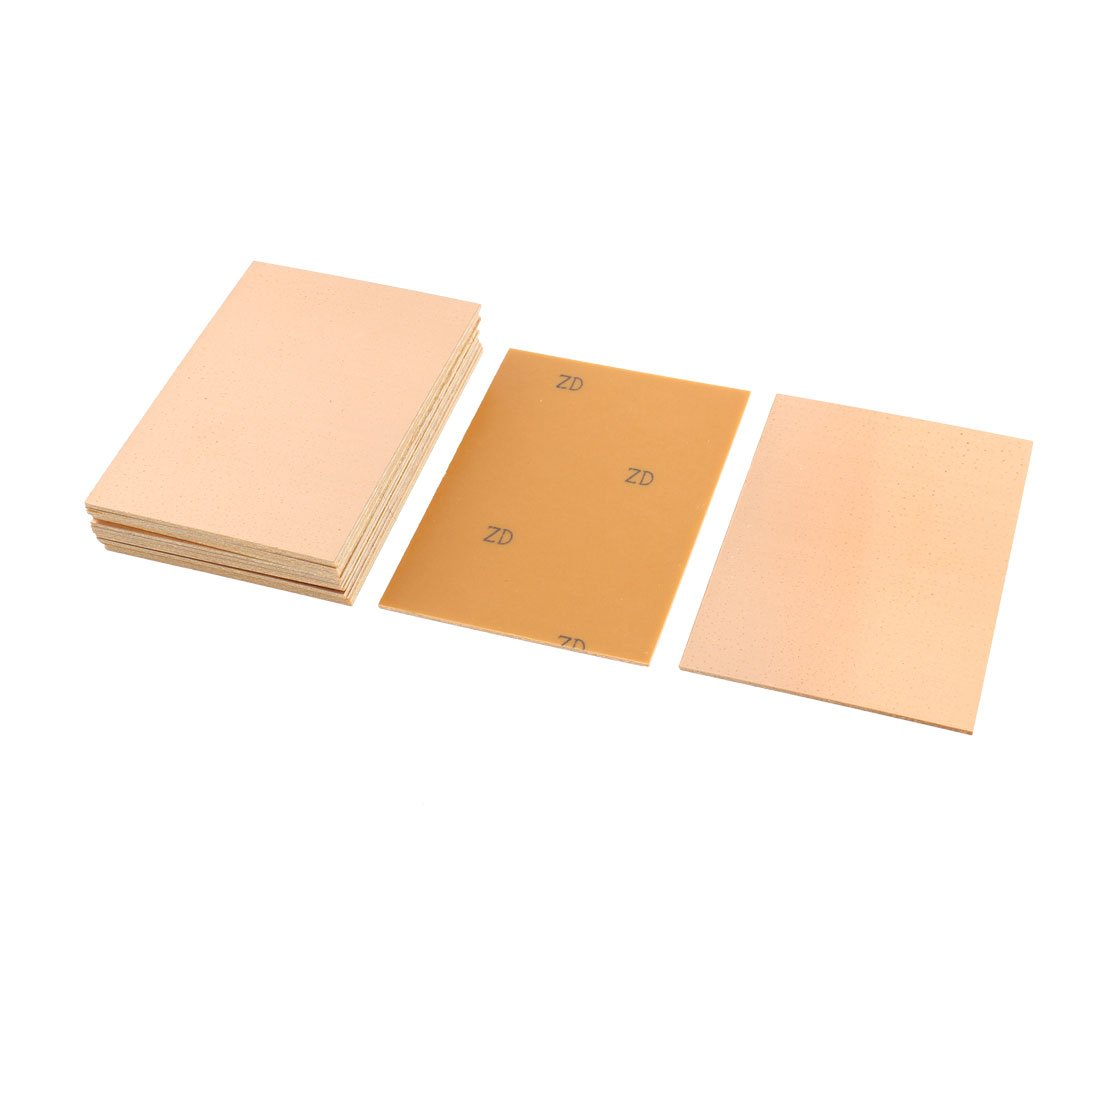 sourcingmap® 15Pcs 100x70x1.5mm DIY Single Sided Copper Clad Laminate PCB Board a15080500ux0222